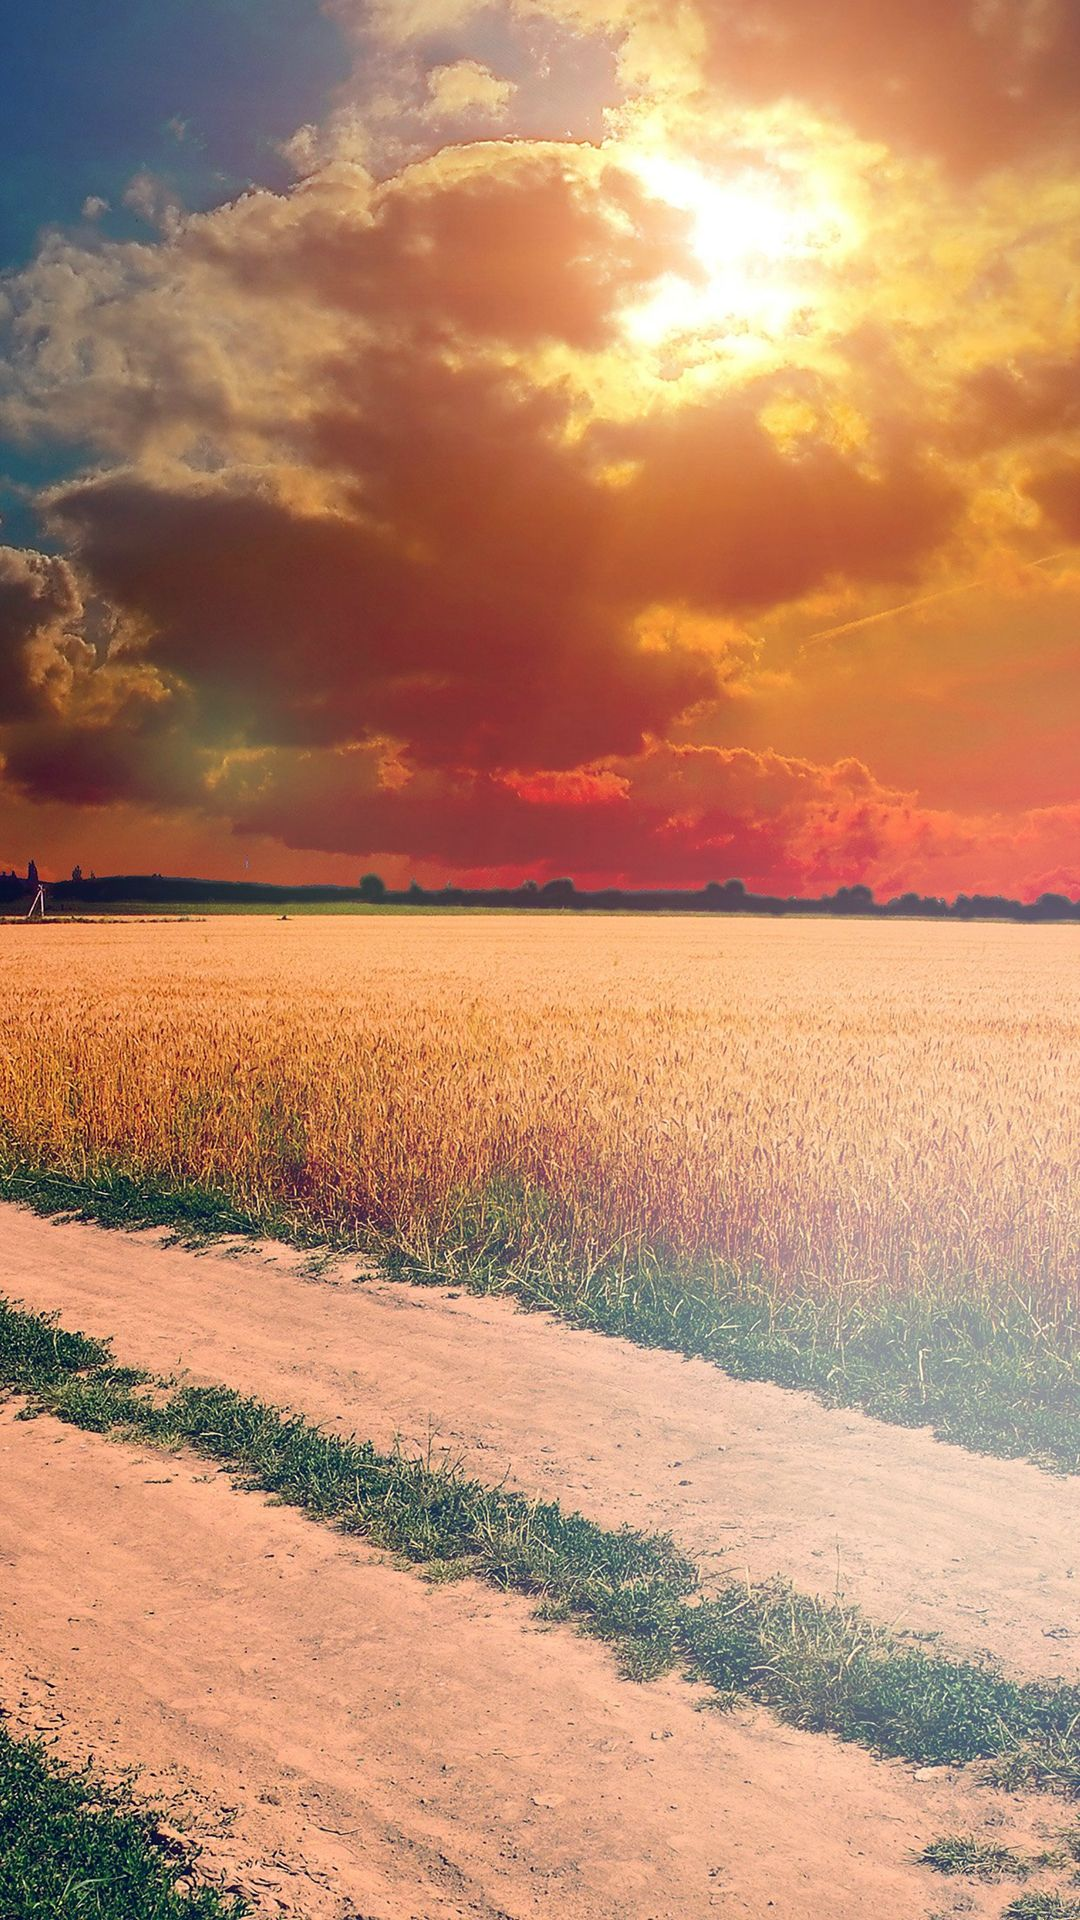 Hot Sunny Day Instagram Look Nature Farm IPhone 6 Plus Wallpaper